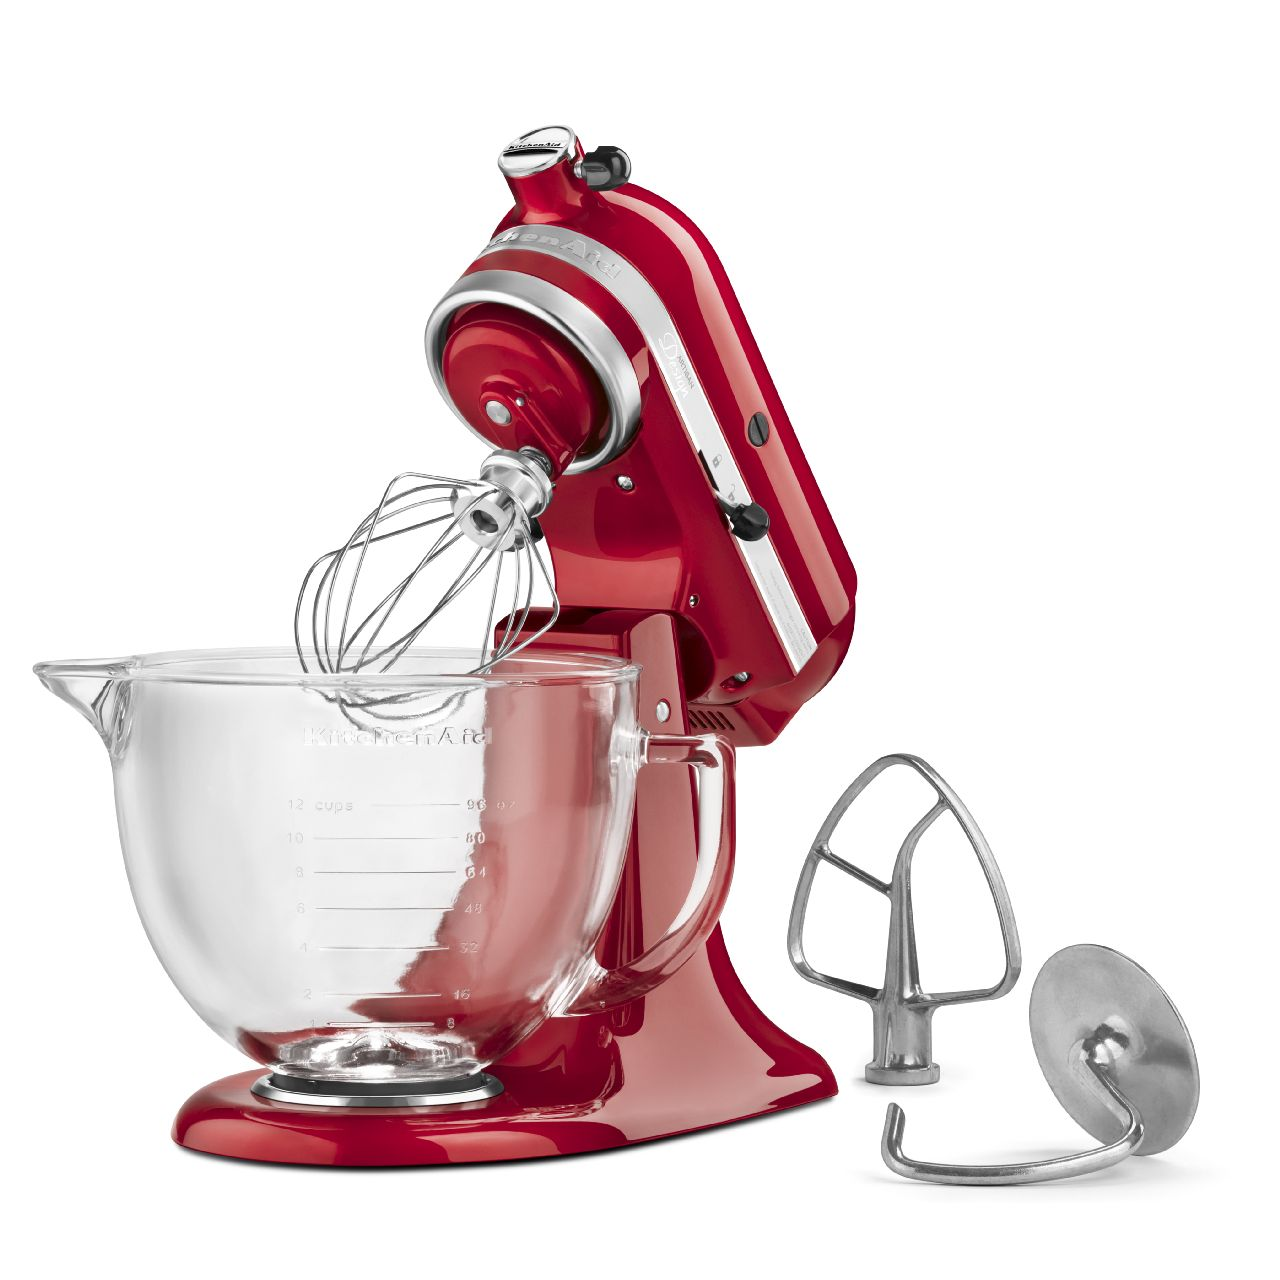 KitchenAid 5 Quart Artisan Glass Bowl Stand Mixer KSM155GBTF ...